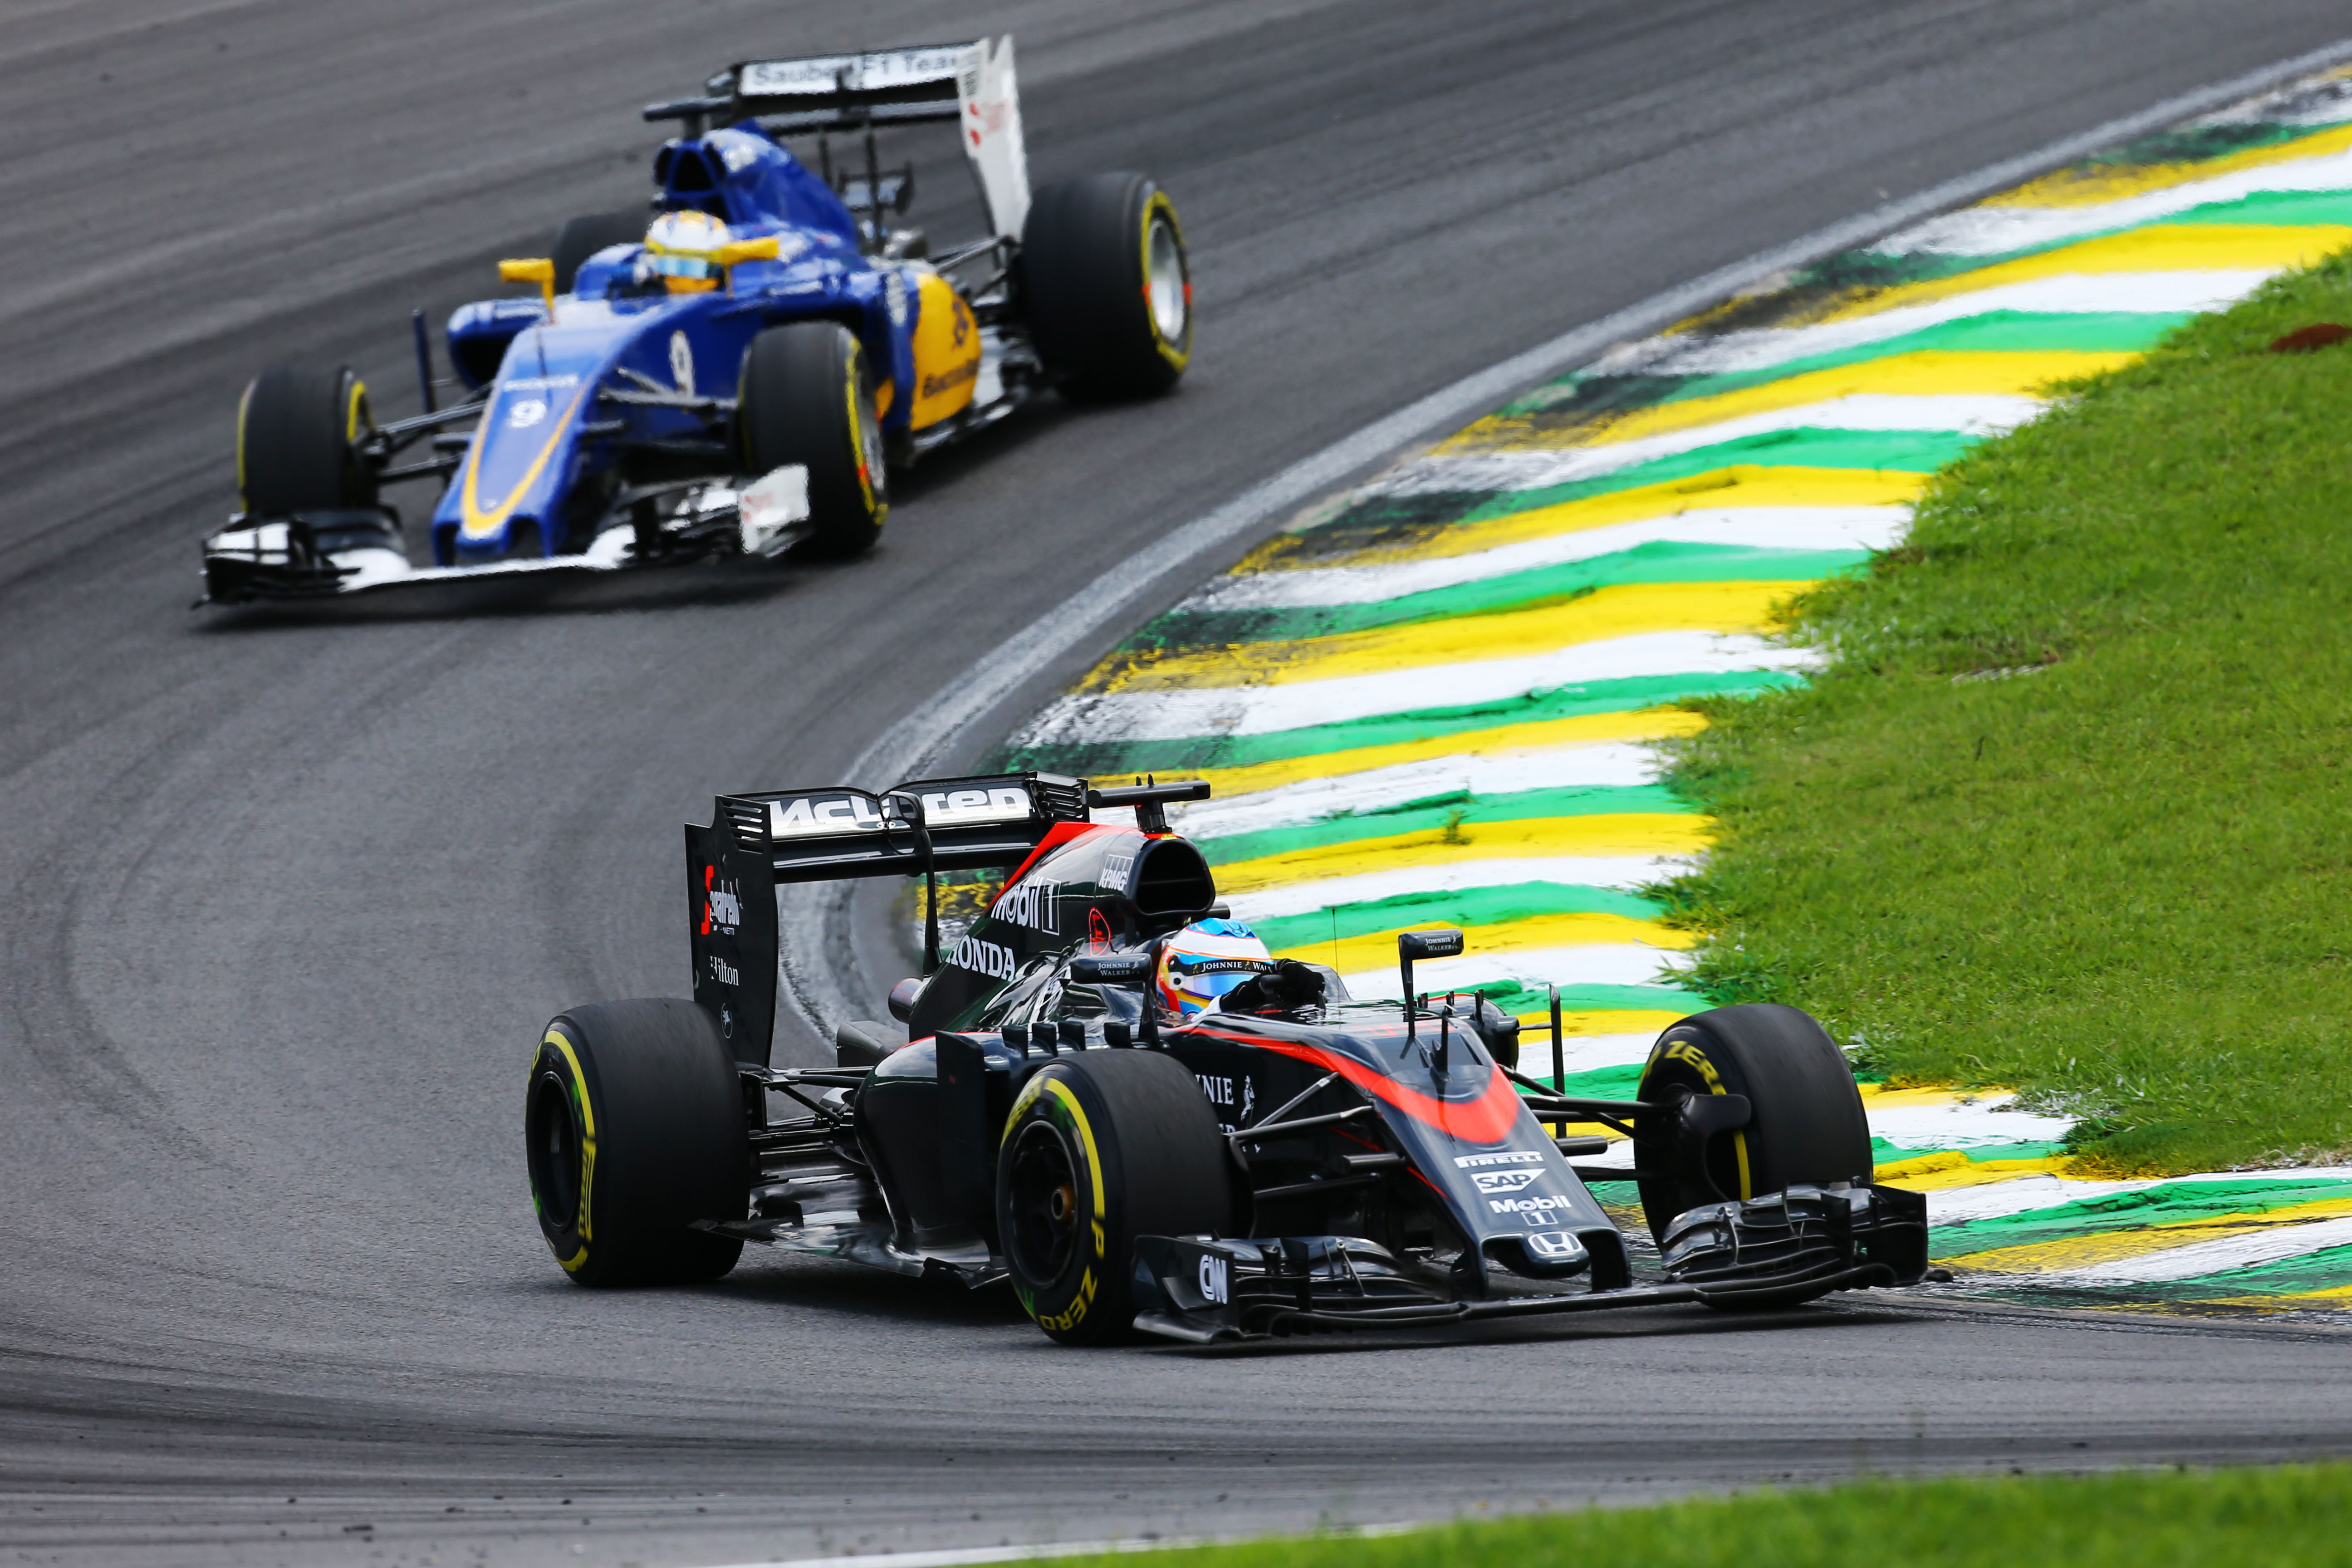 Fernando Alonso McLaren Brazilian Grand Prix 2015 Interlagos